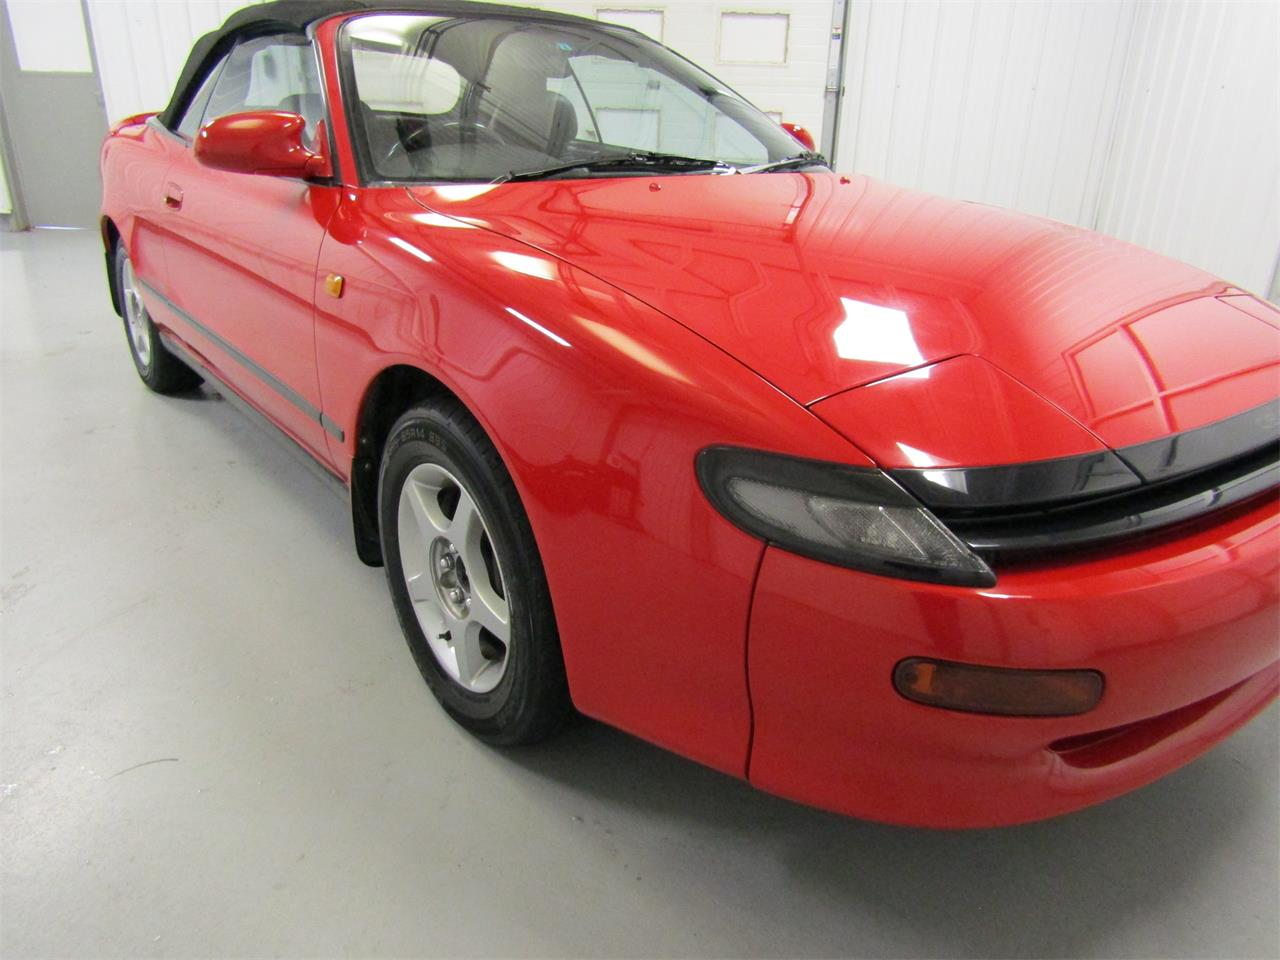 Large Picture of 1991 Celica located in Virginia - $9,999.00 Offered by Duncan Imports & Classic Cars - OV71